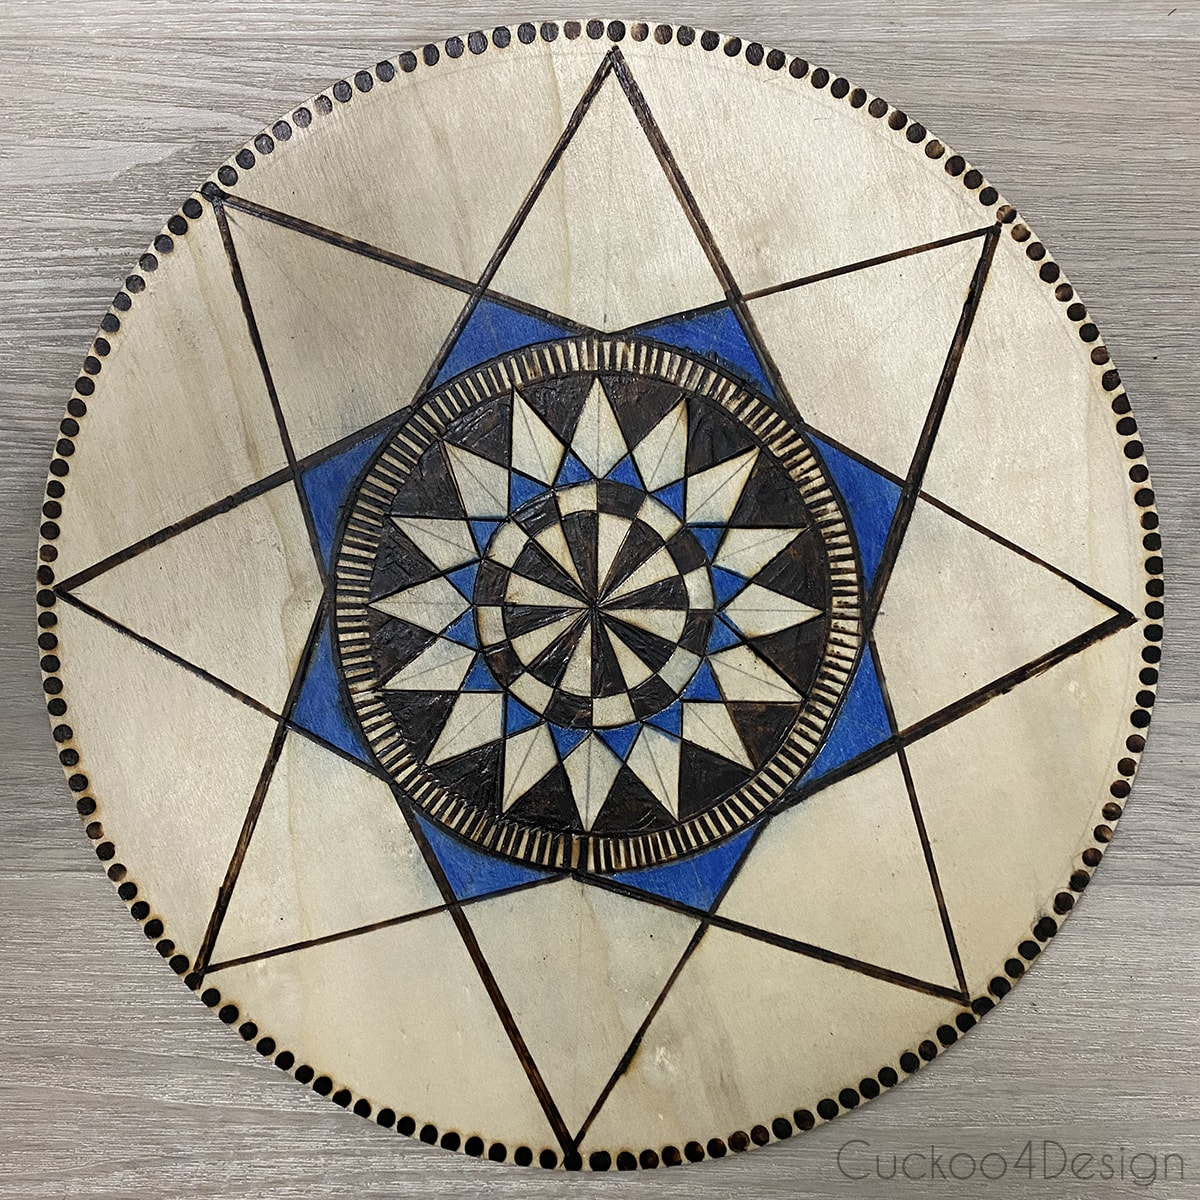 Wood burned geometric wall art in Pennsylvania Dutch Hex character style